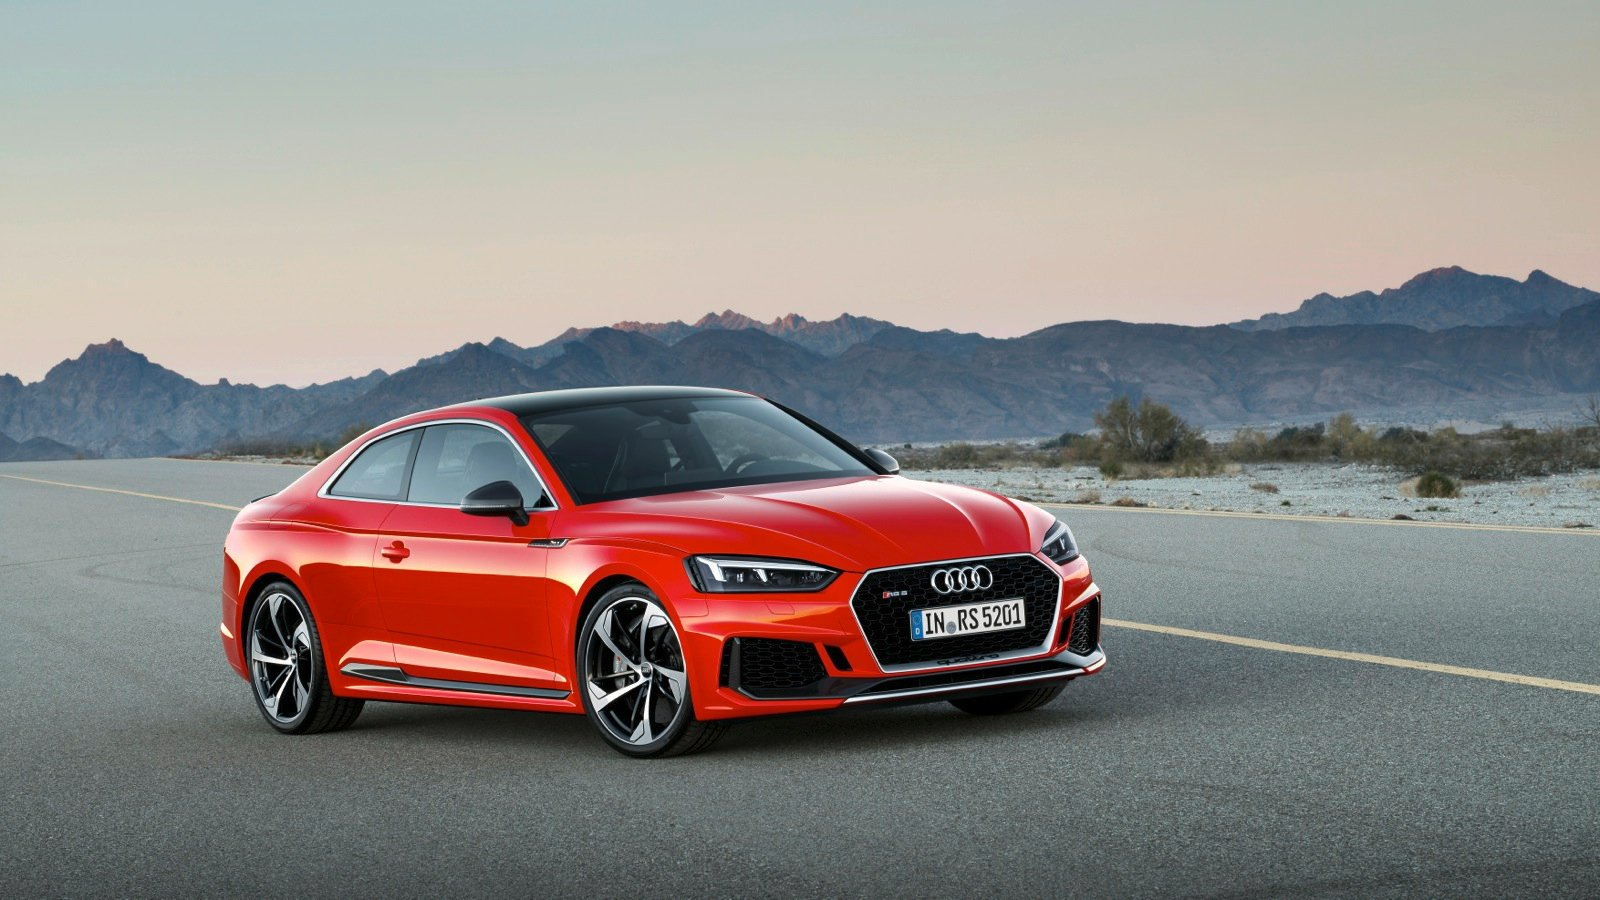 2017 Audi RS5 Coupe revealed - Photos